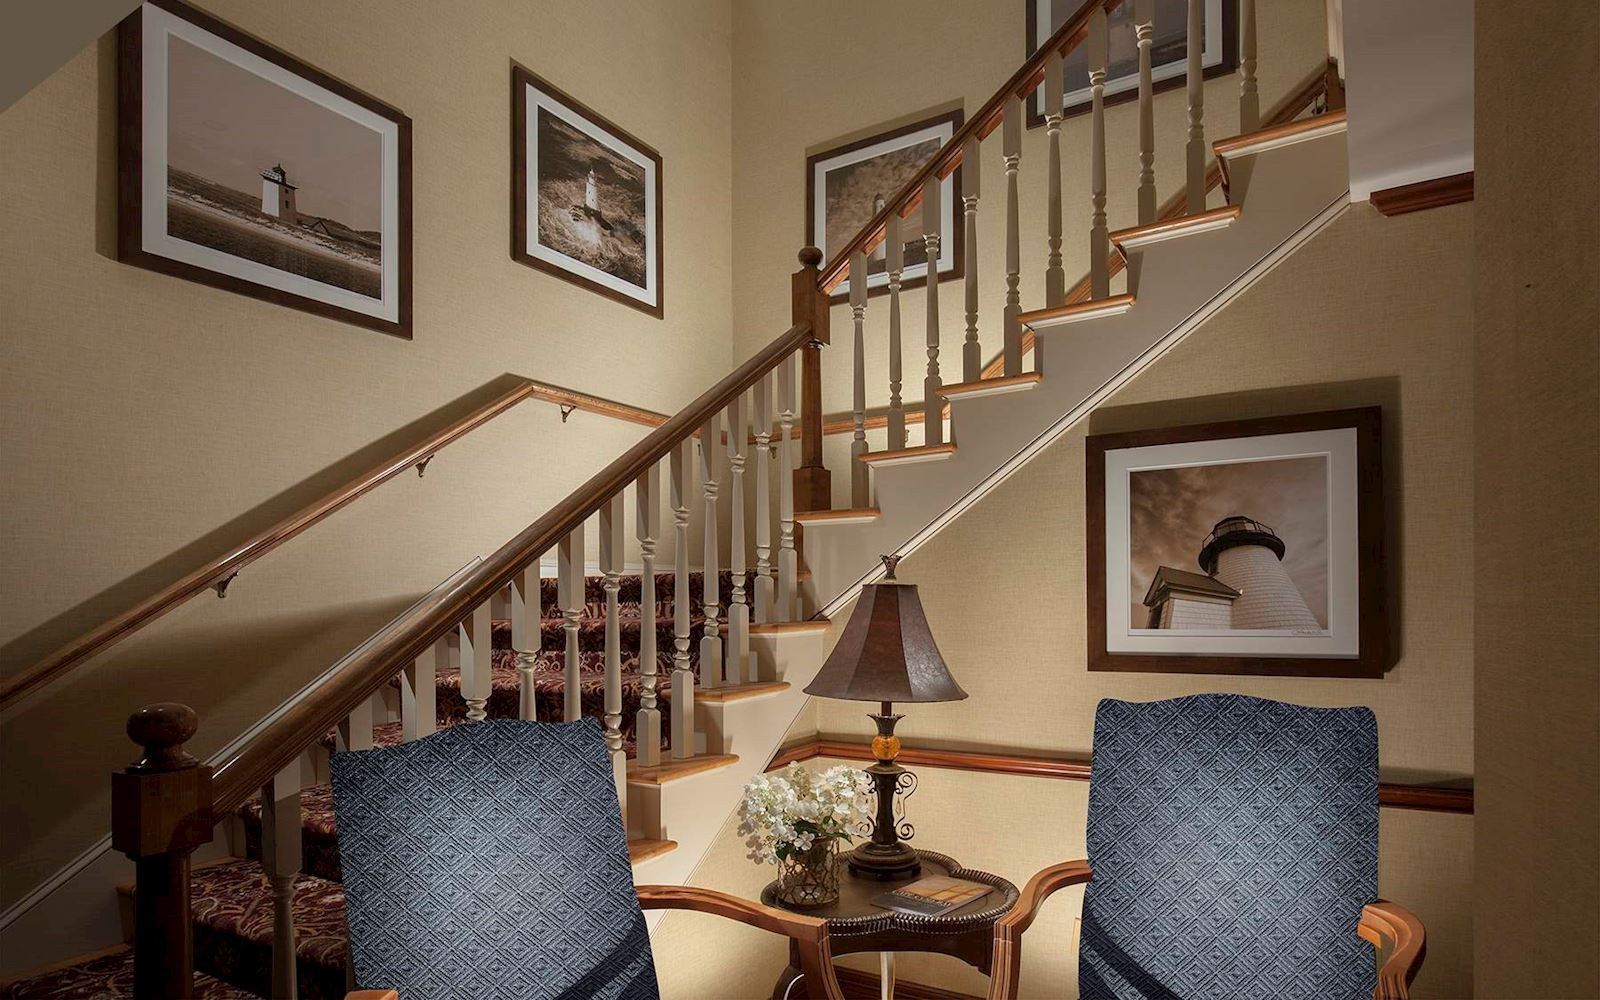 Choose One of Our Cape Cod Hotel Offers - Inn on the Square